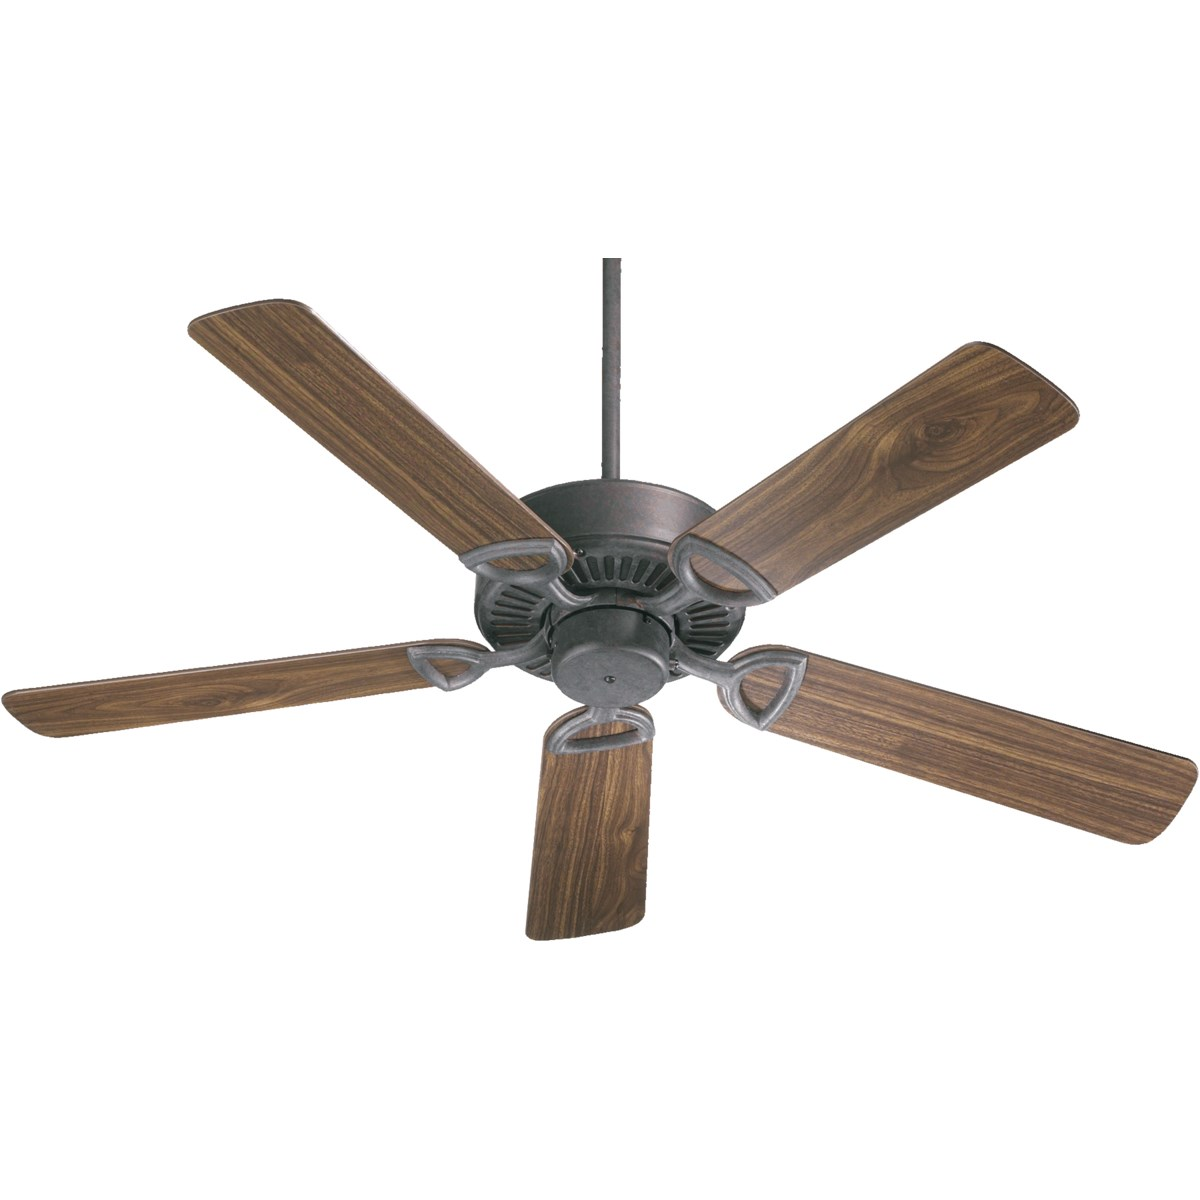 Estate 52-in 5 Blade Toasted Sienna Traditional Ceiling Fan